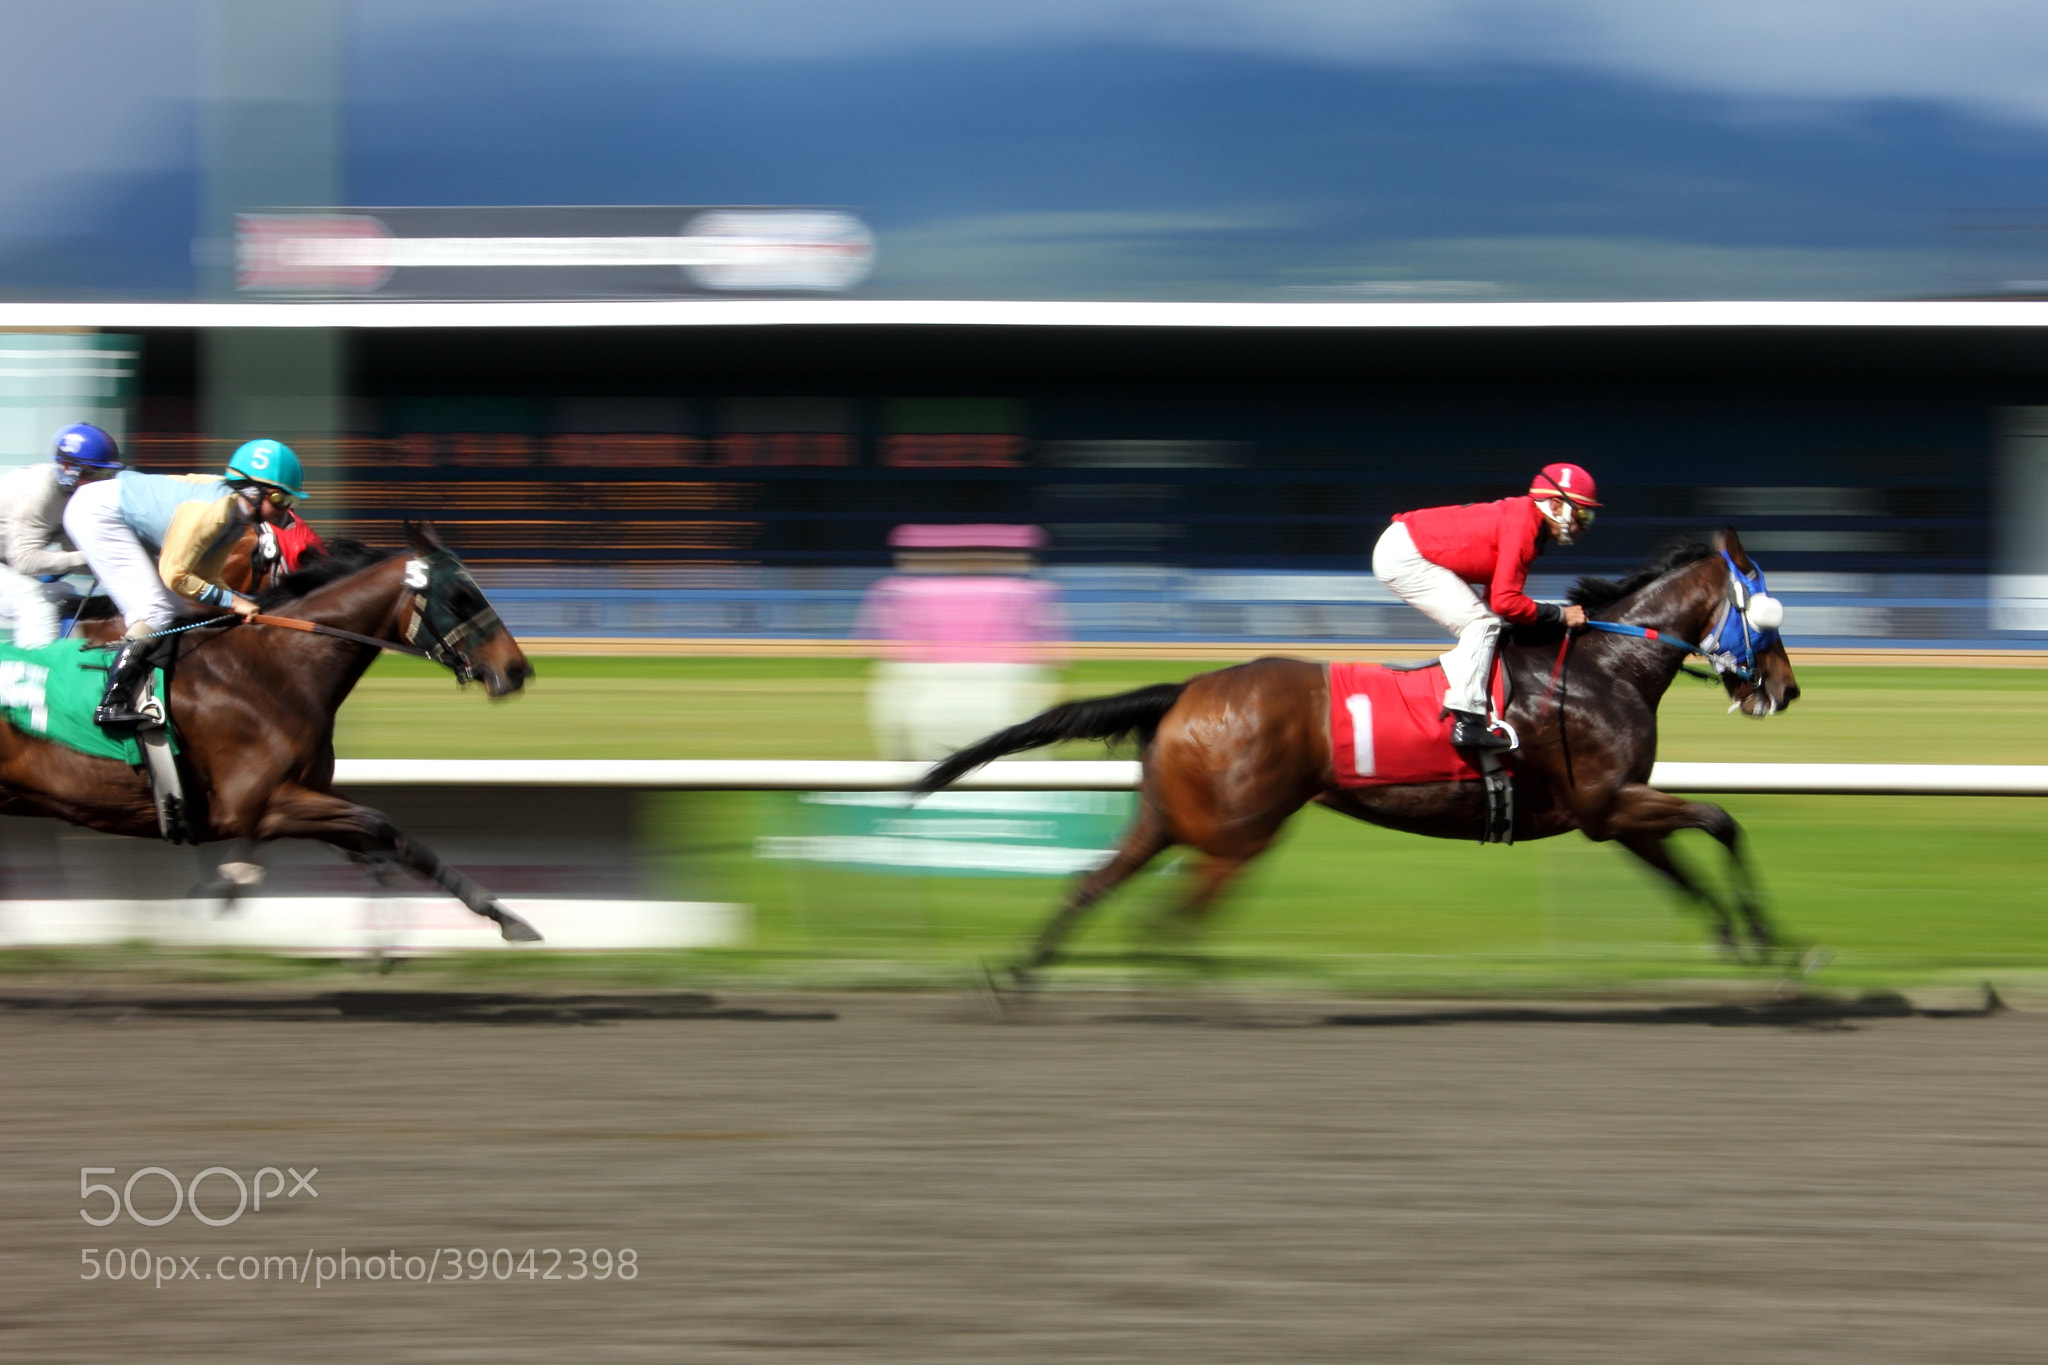 Photograph Horse race by Lisa Ireton on 500px